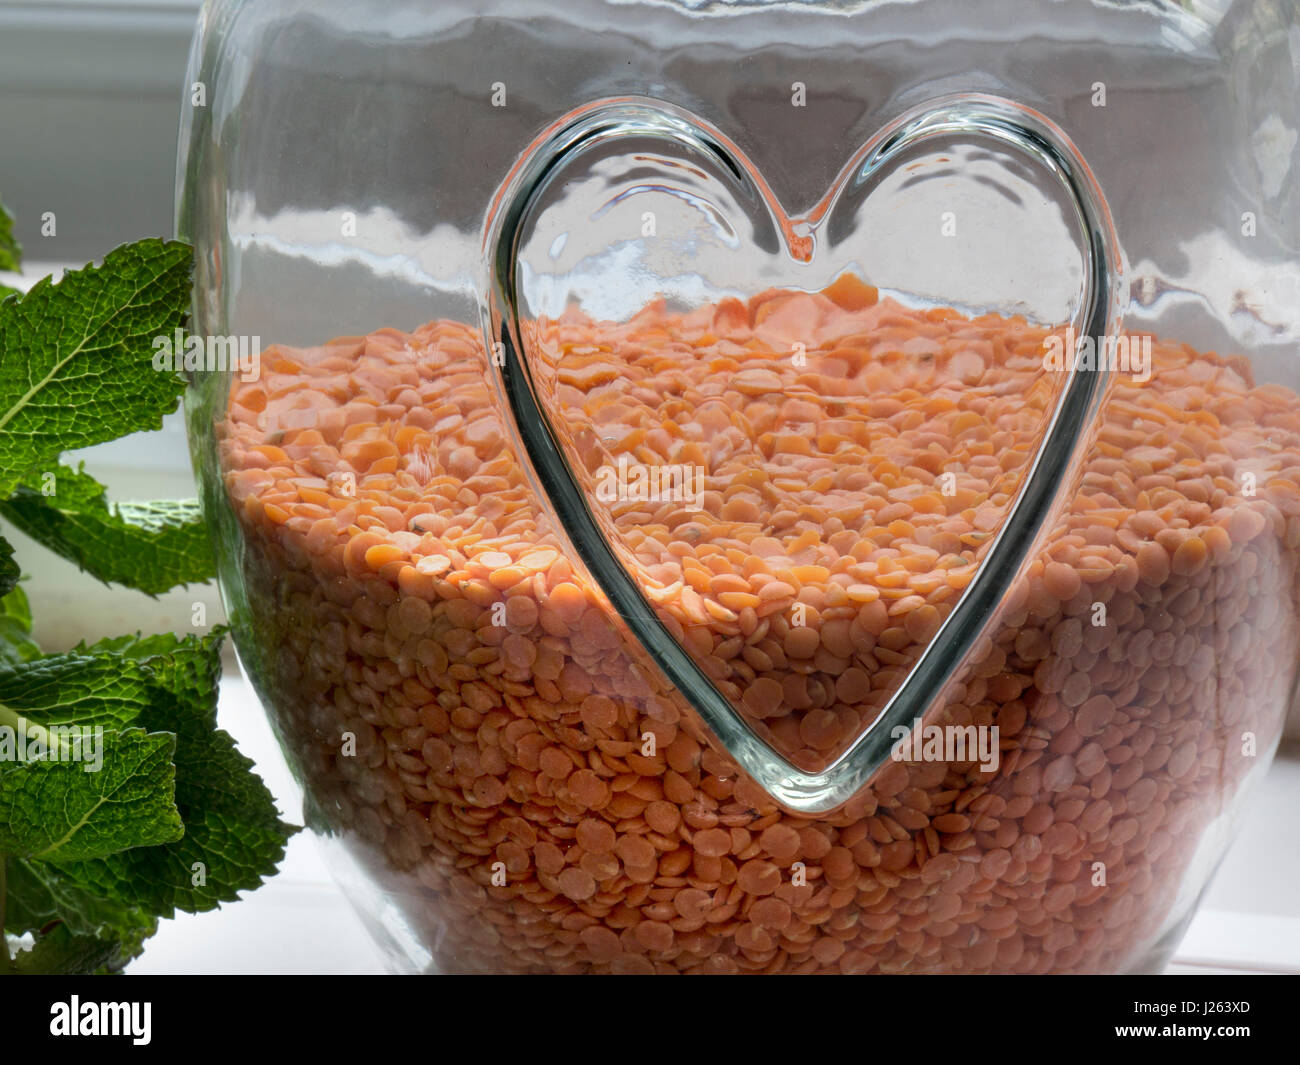 Glass jar with healthy heart motif relief, containing red Lentils, a healthy edible pulse Legume, with sprig of - Stock Image